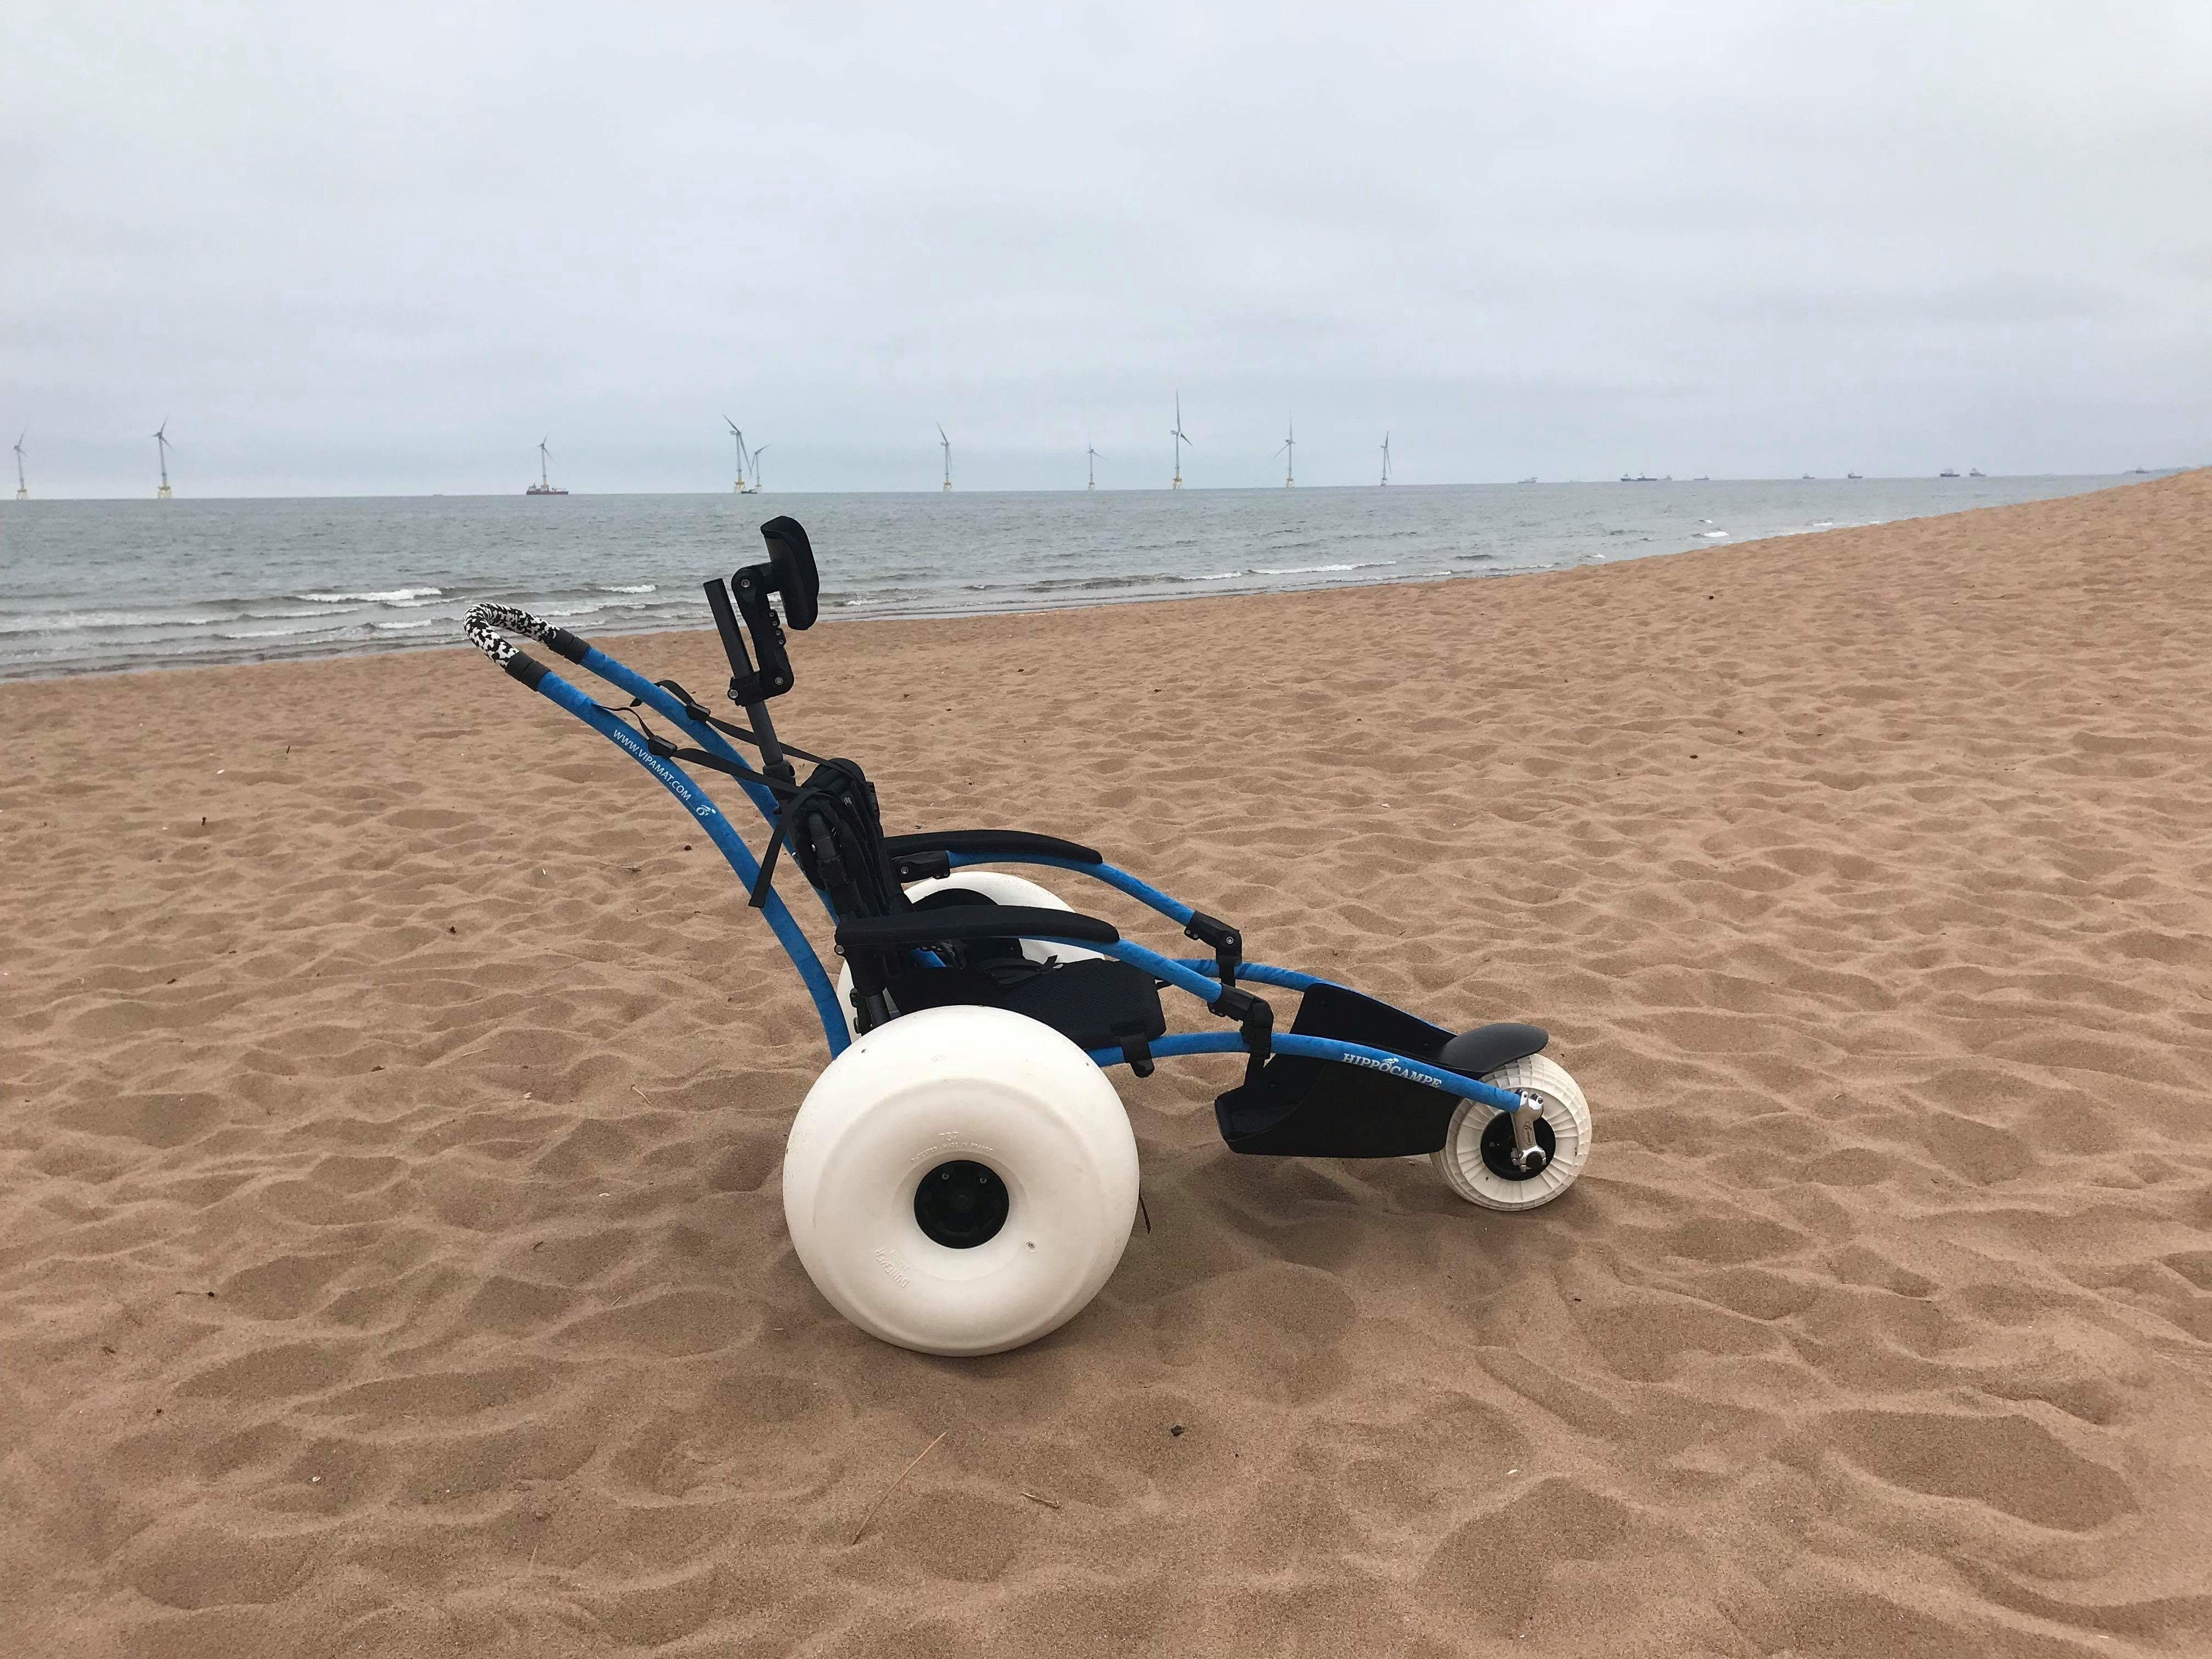 Hippocampe buggy style wheelchair on the beach